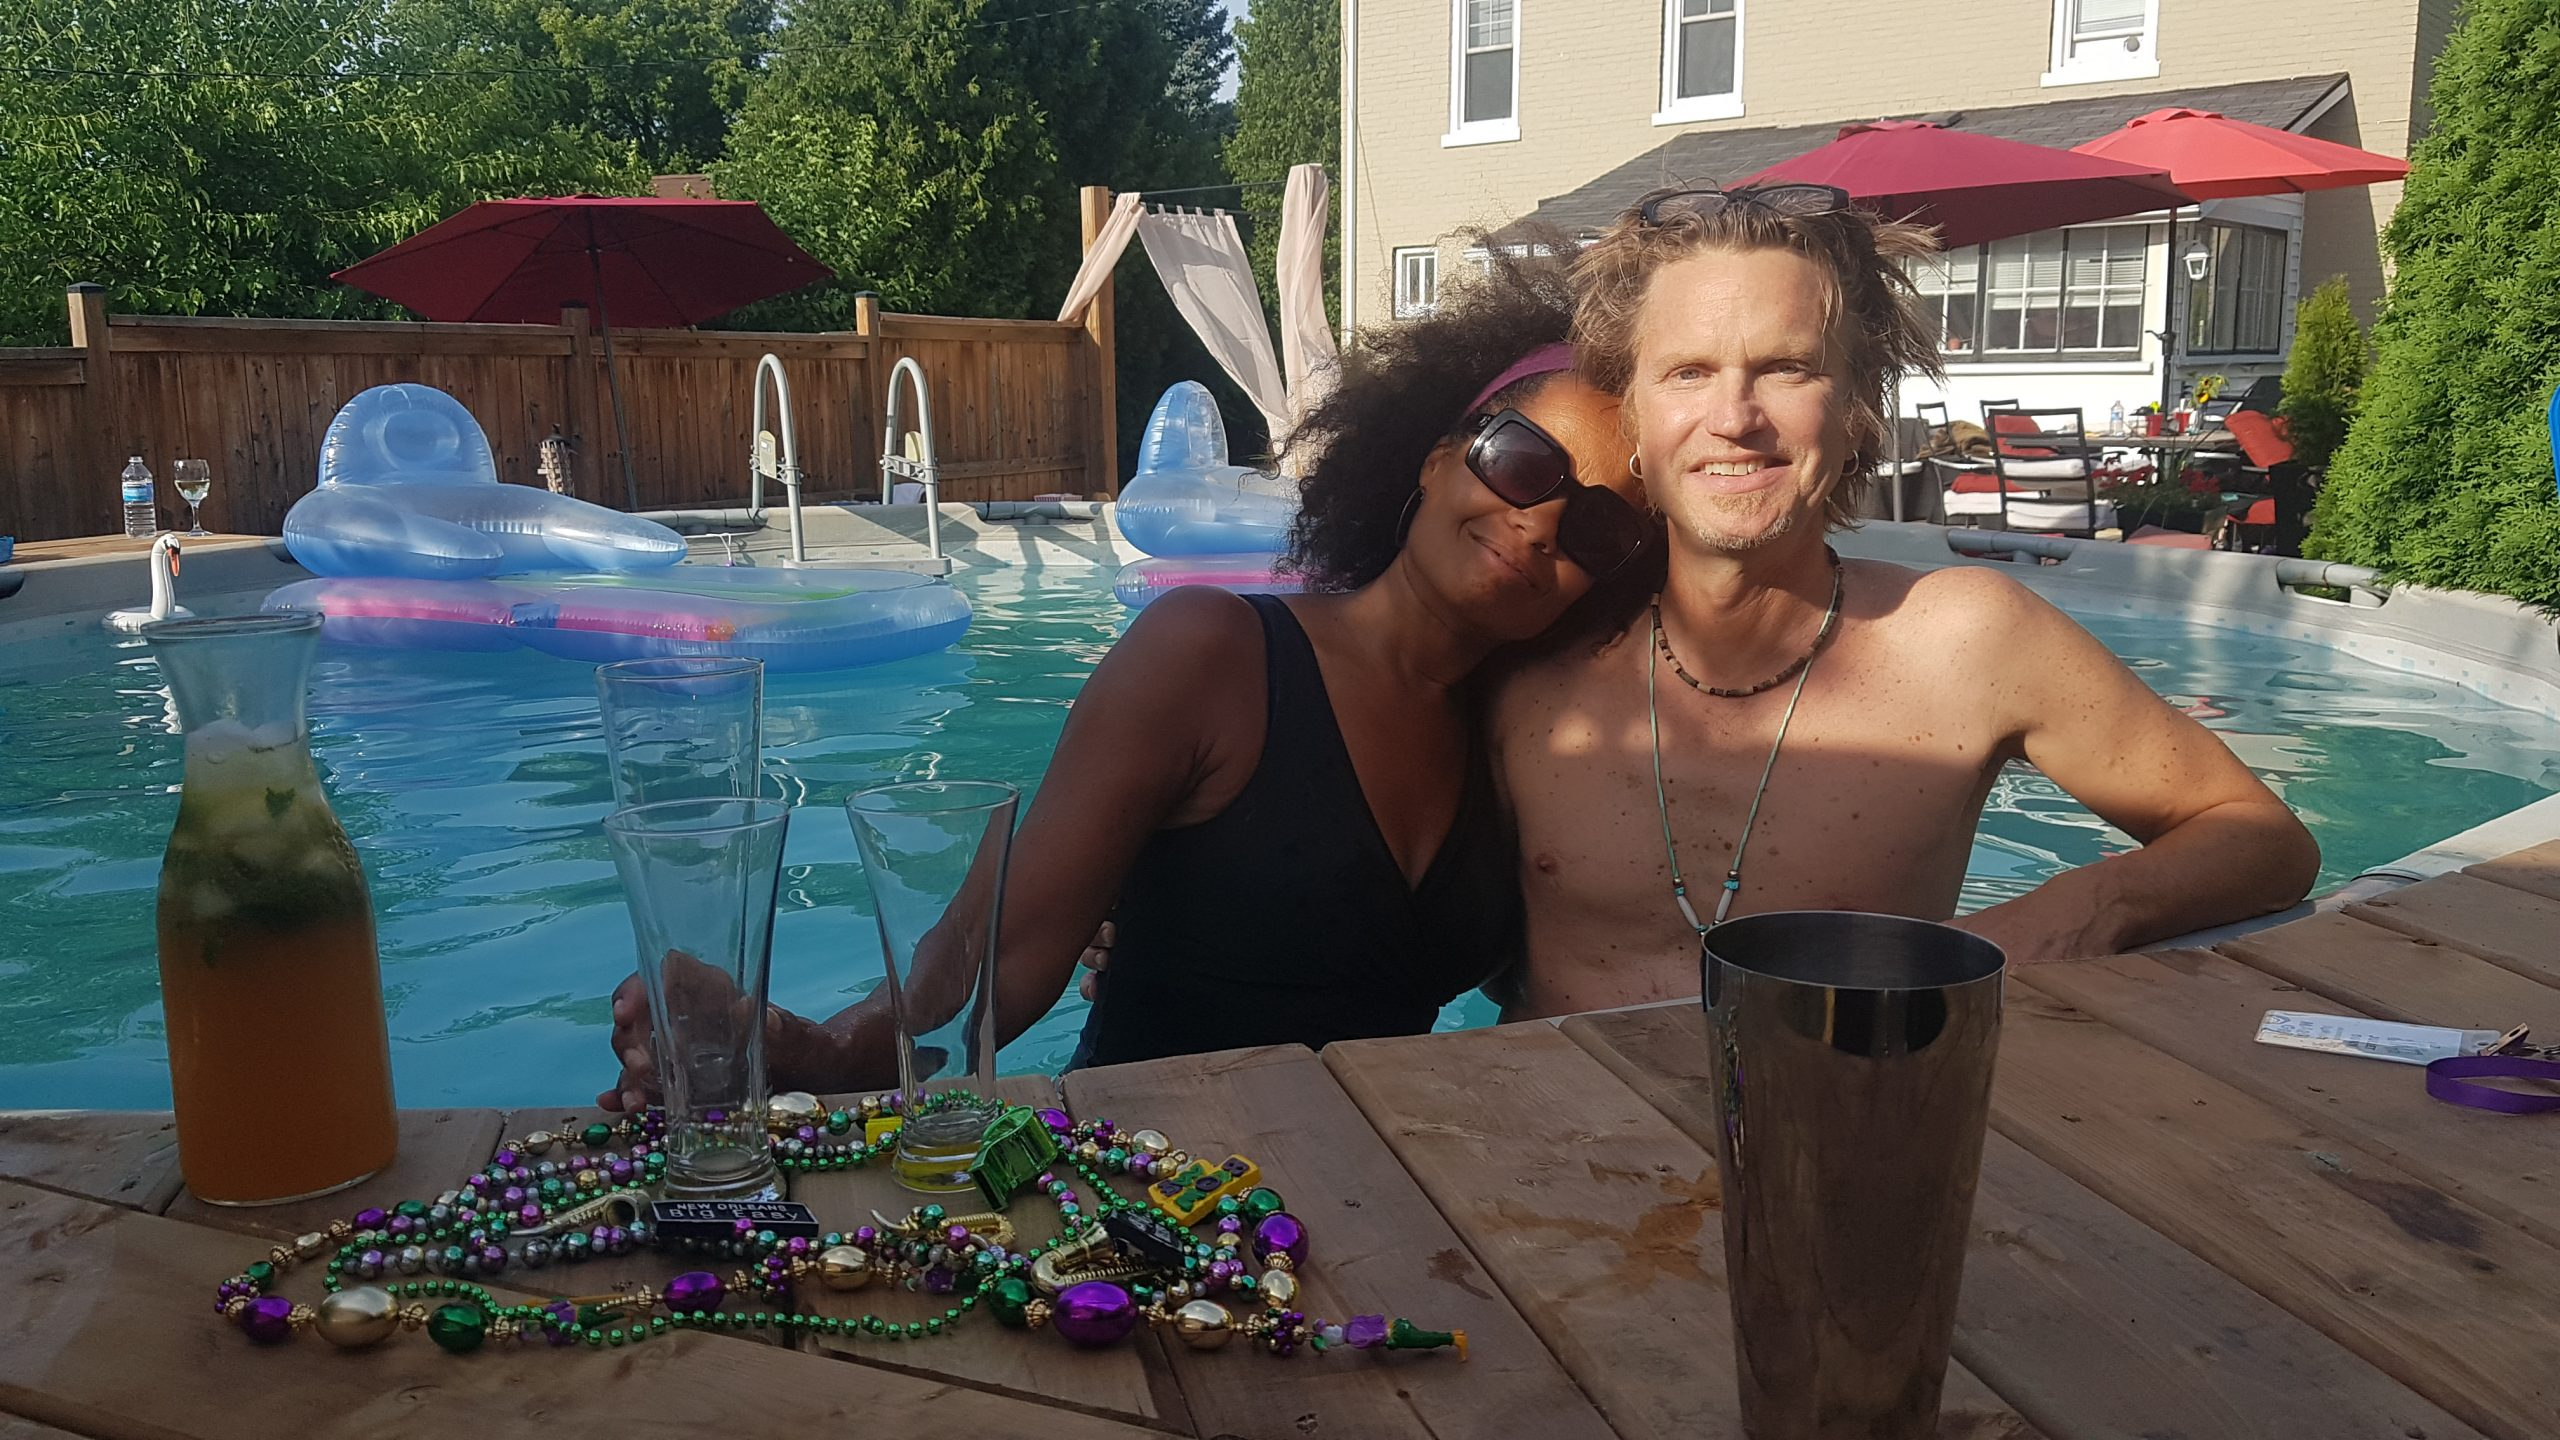 Juliet Dunn and Peter Shea - Niagara's ONLINE Summer Mardi Gras - Saturday, July 18, 2020. Photo: Nicholas Paolone